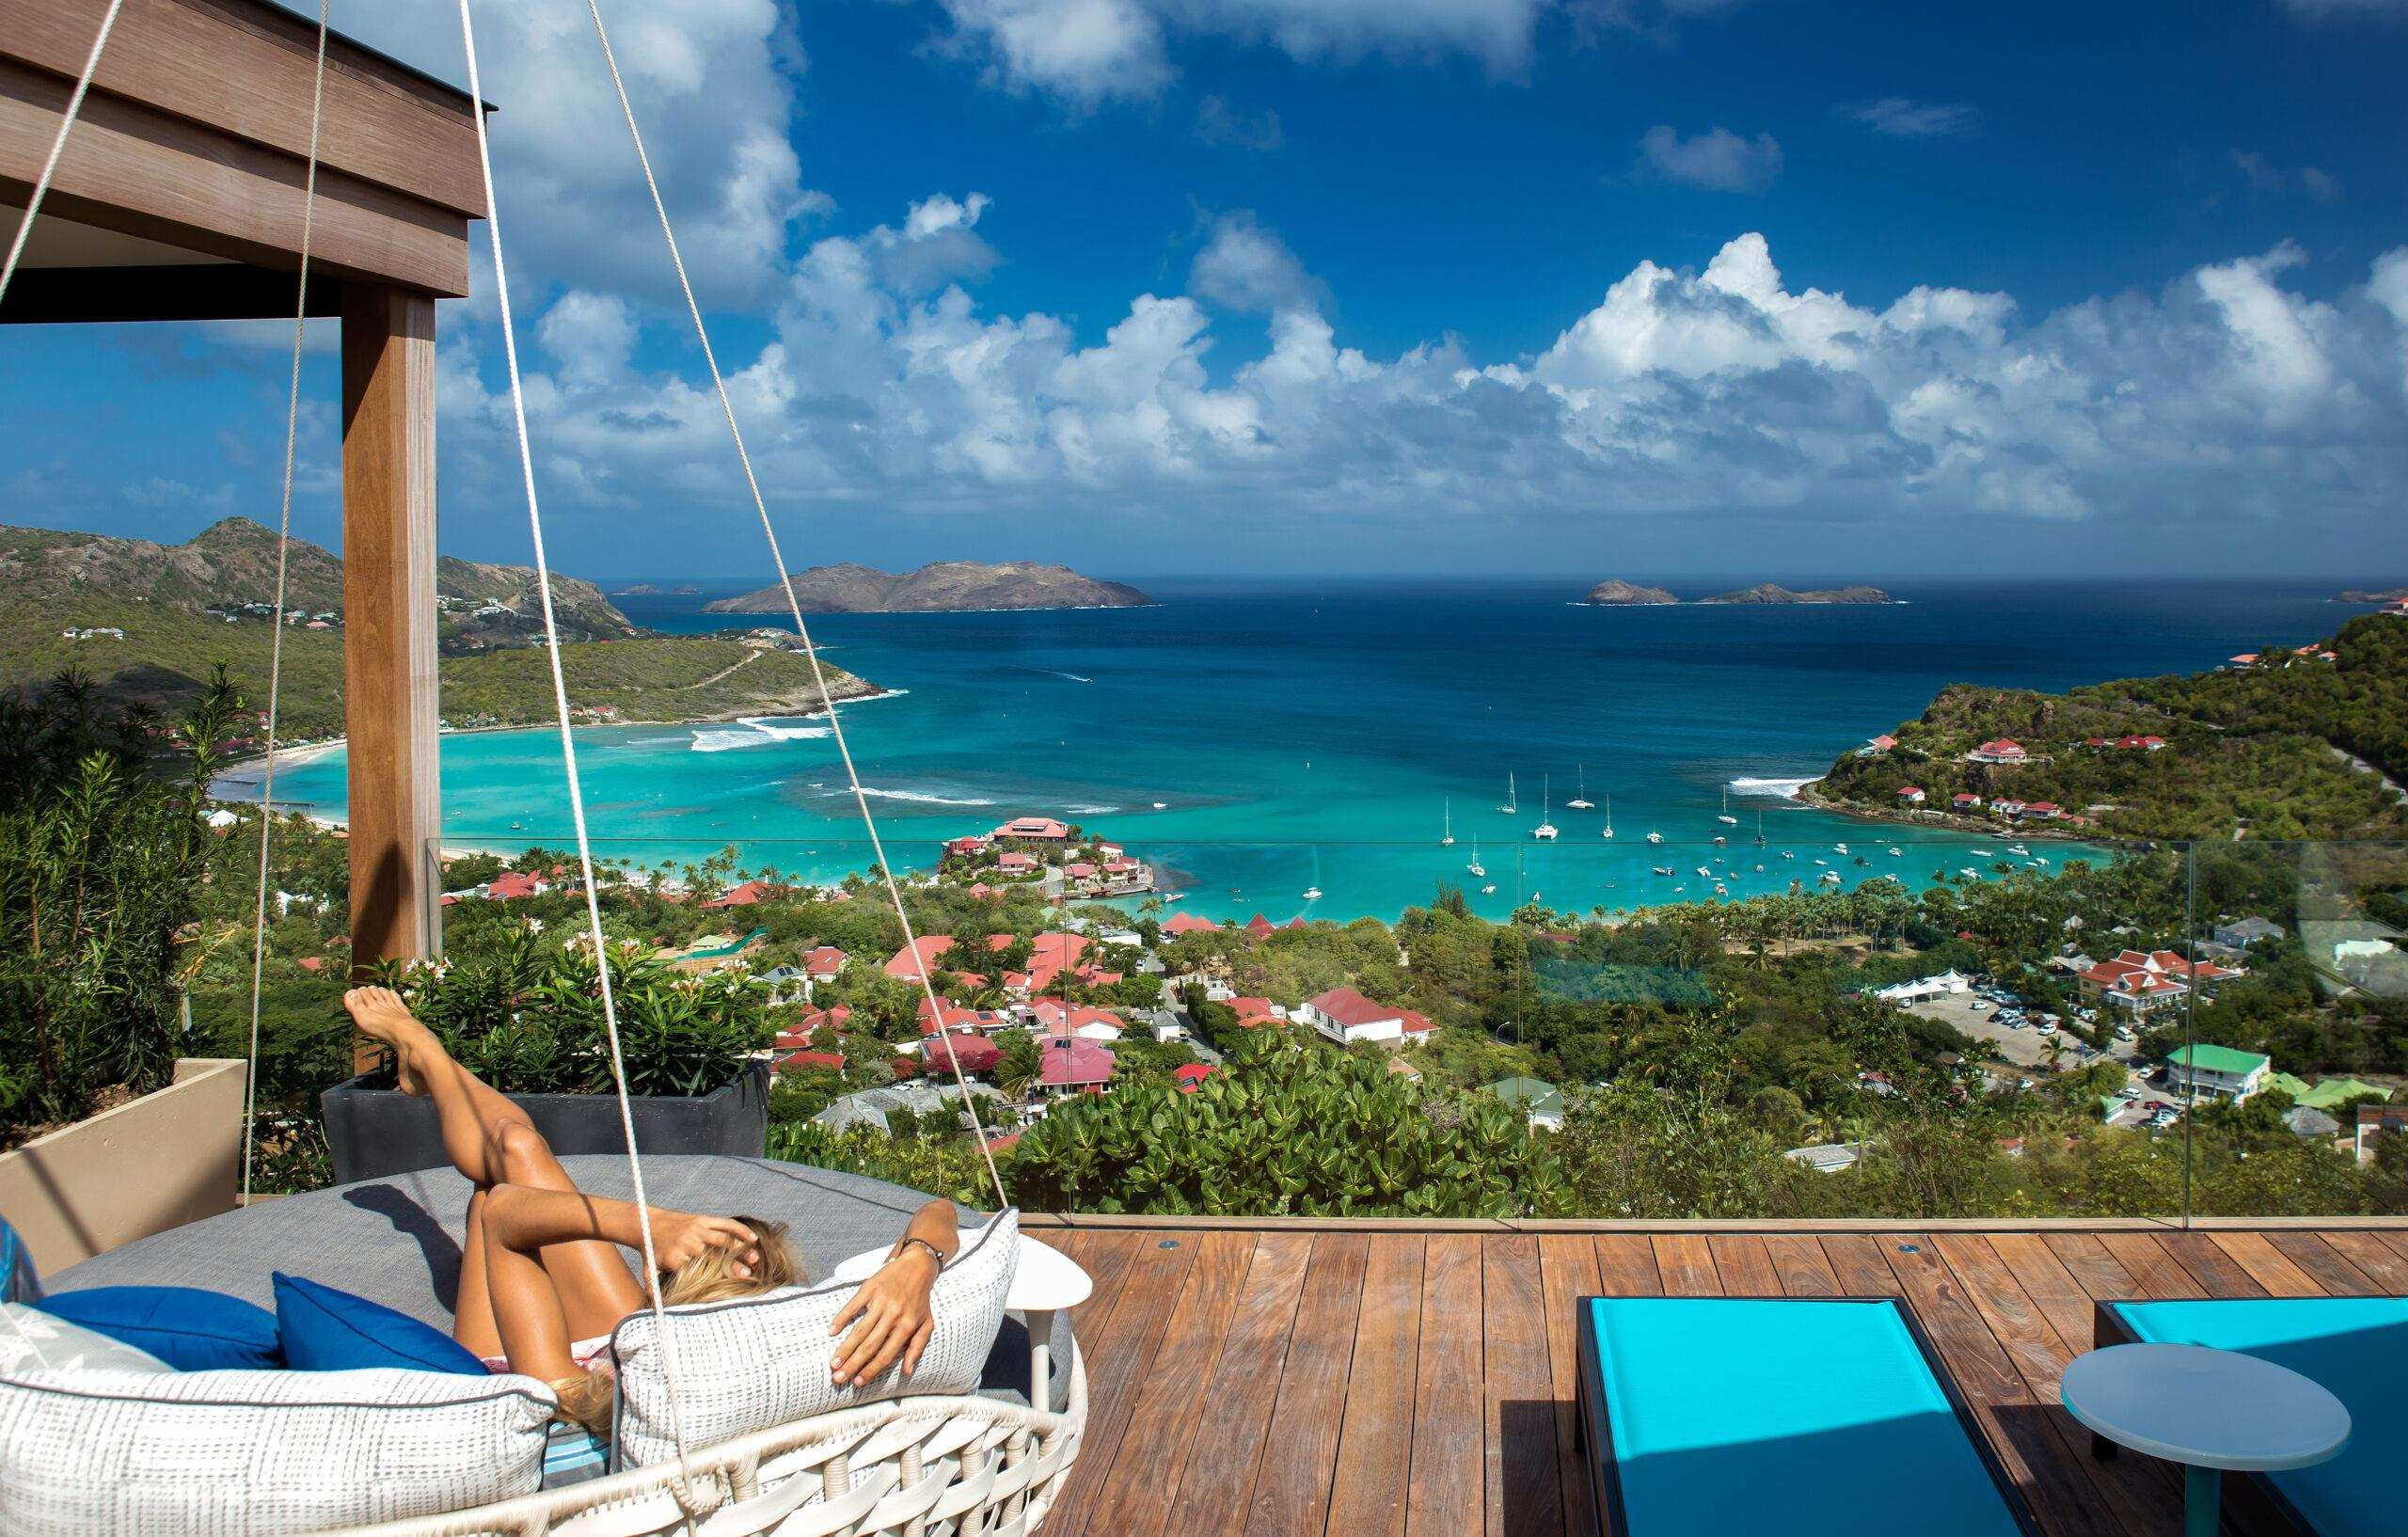 Where to stay on St Barts